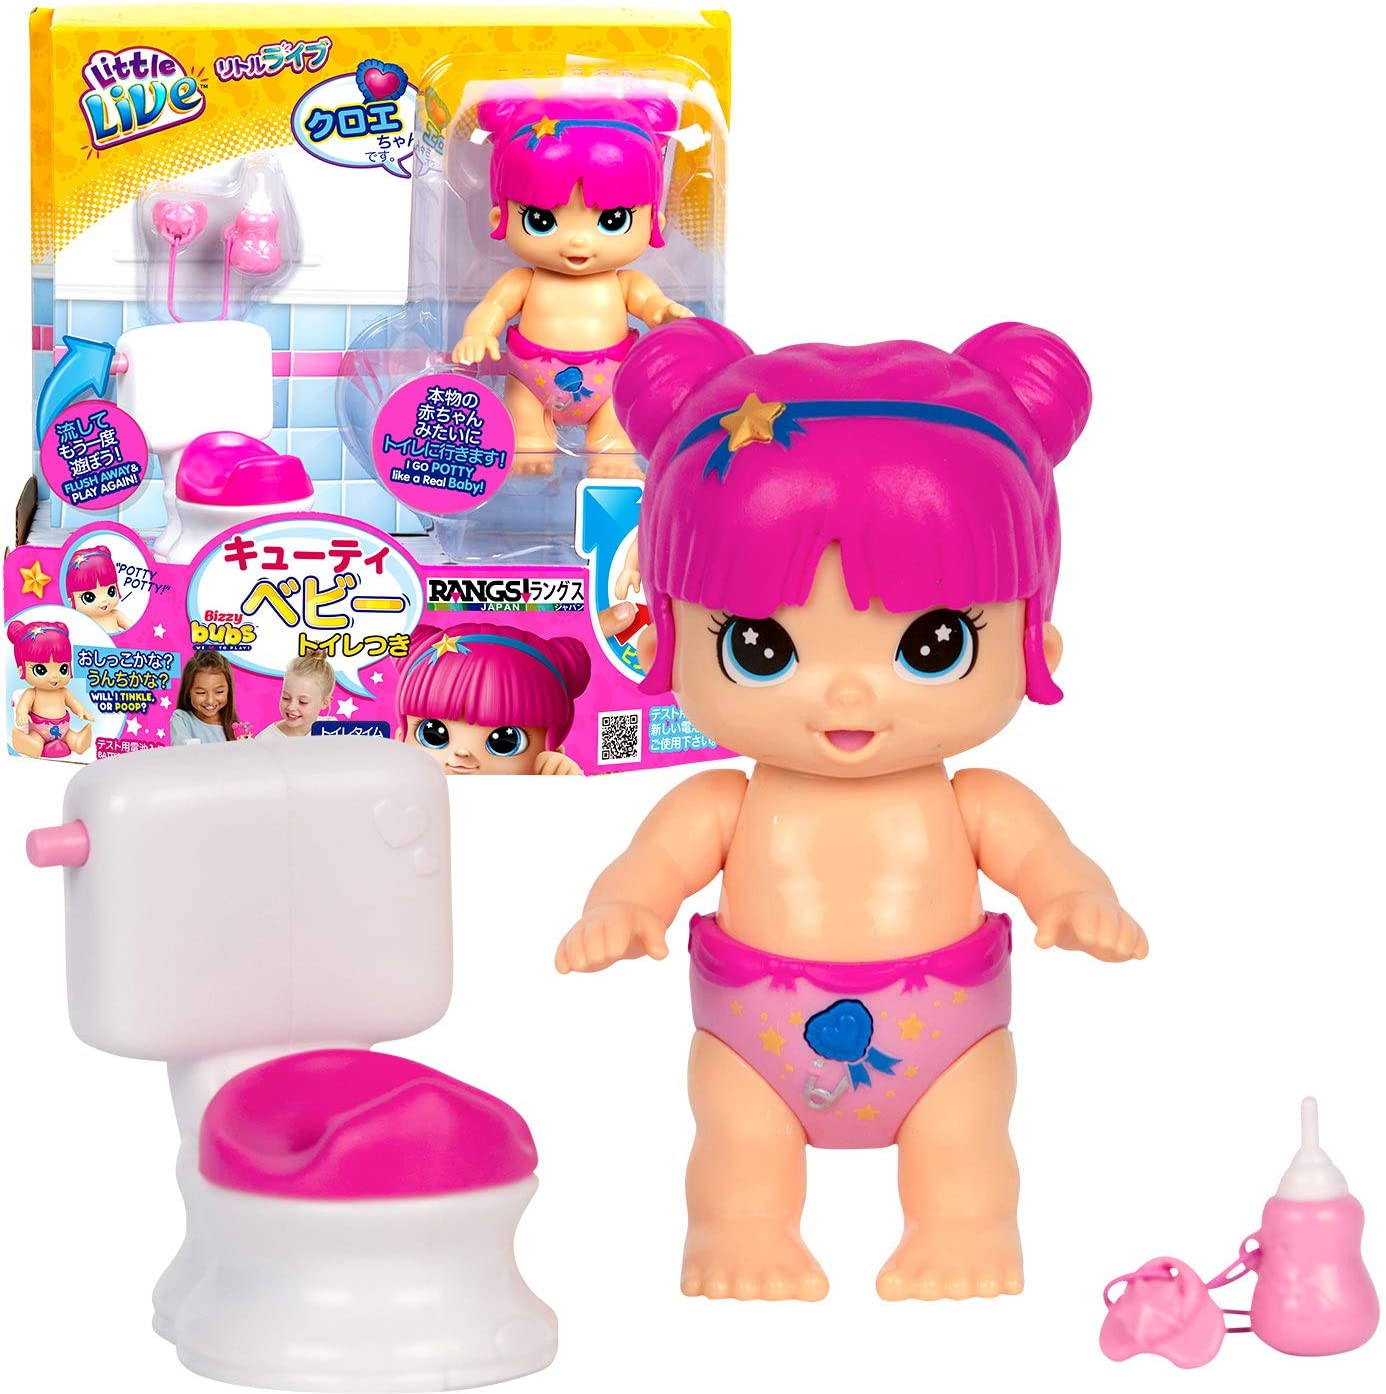 Little Live Bizzy Bubs Max Limited Special Price 55% OFF Season Baby Pott Playset - Chloe Clever